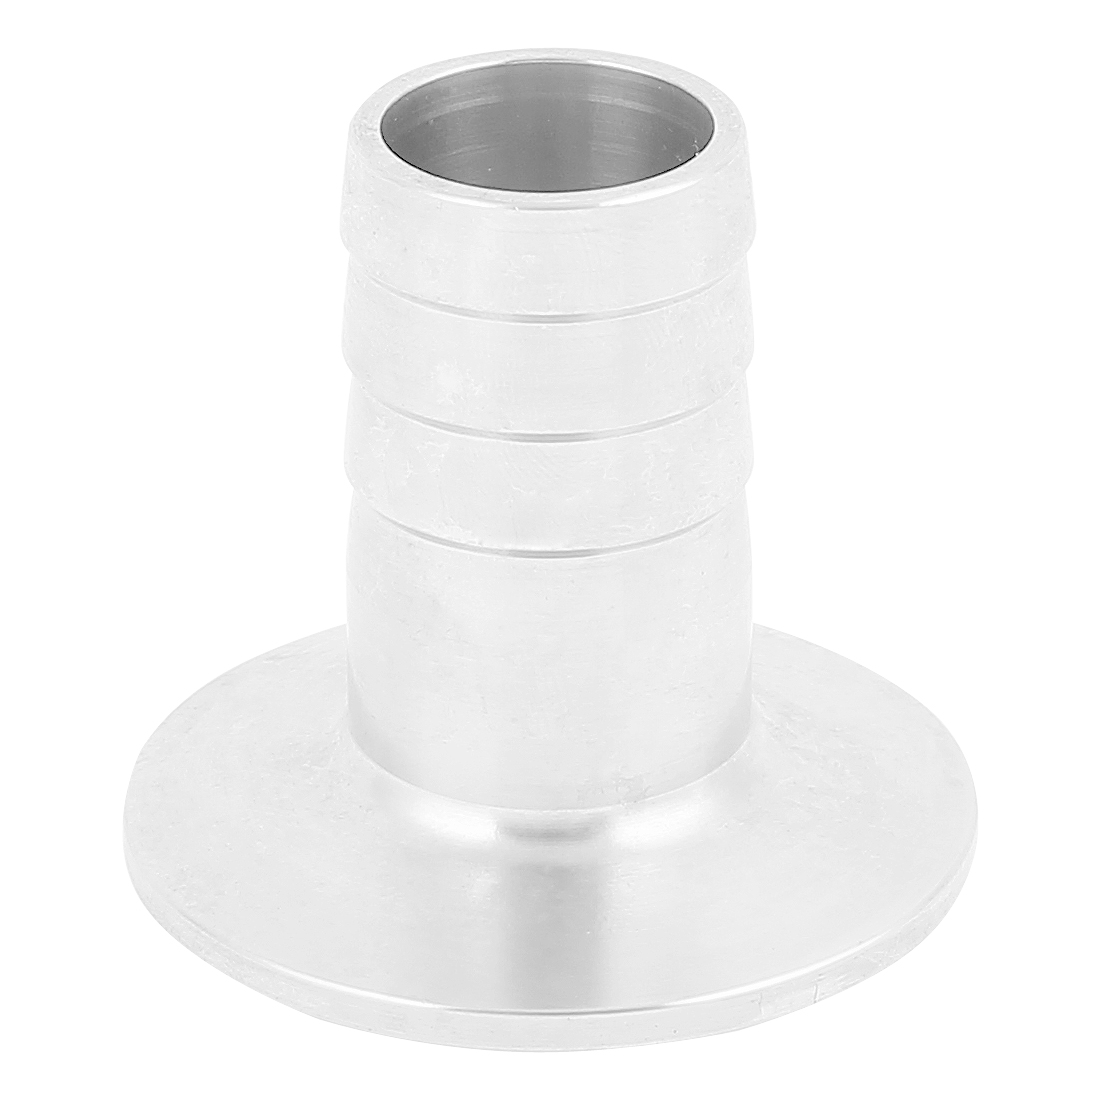 Stainless Steel 304 KF40 Flange to 25mm Hose Barb Adapter for Vacuum